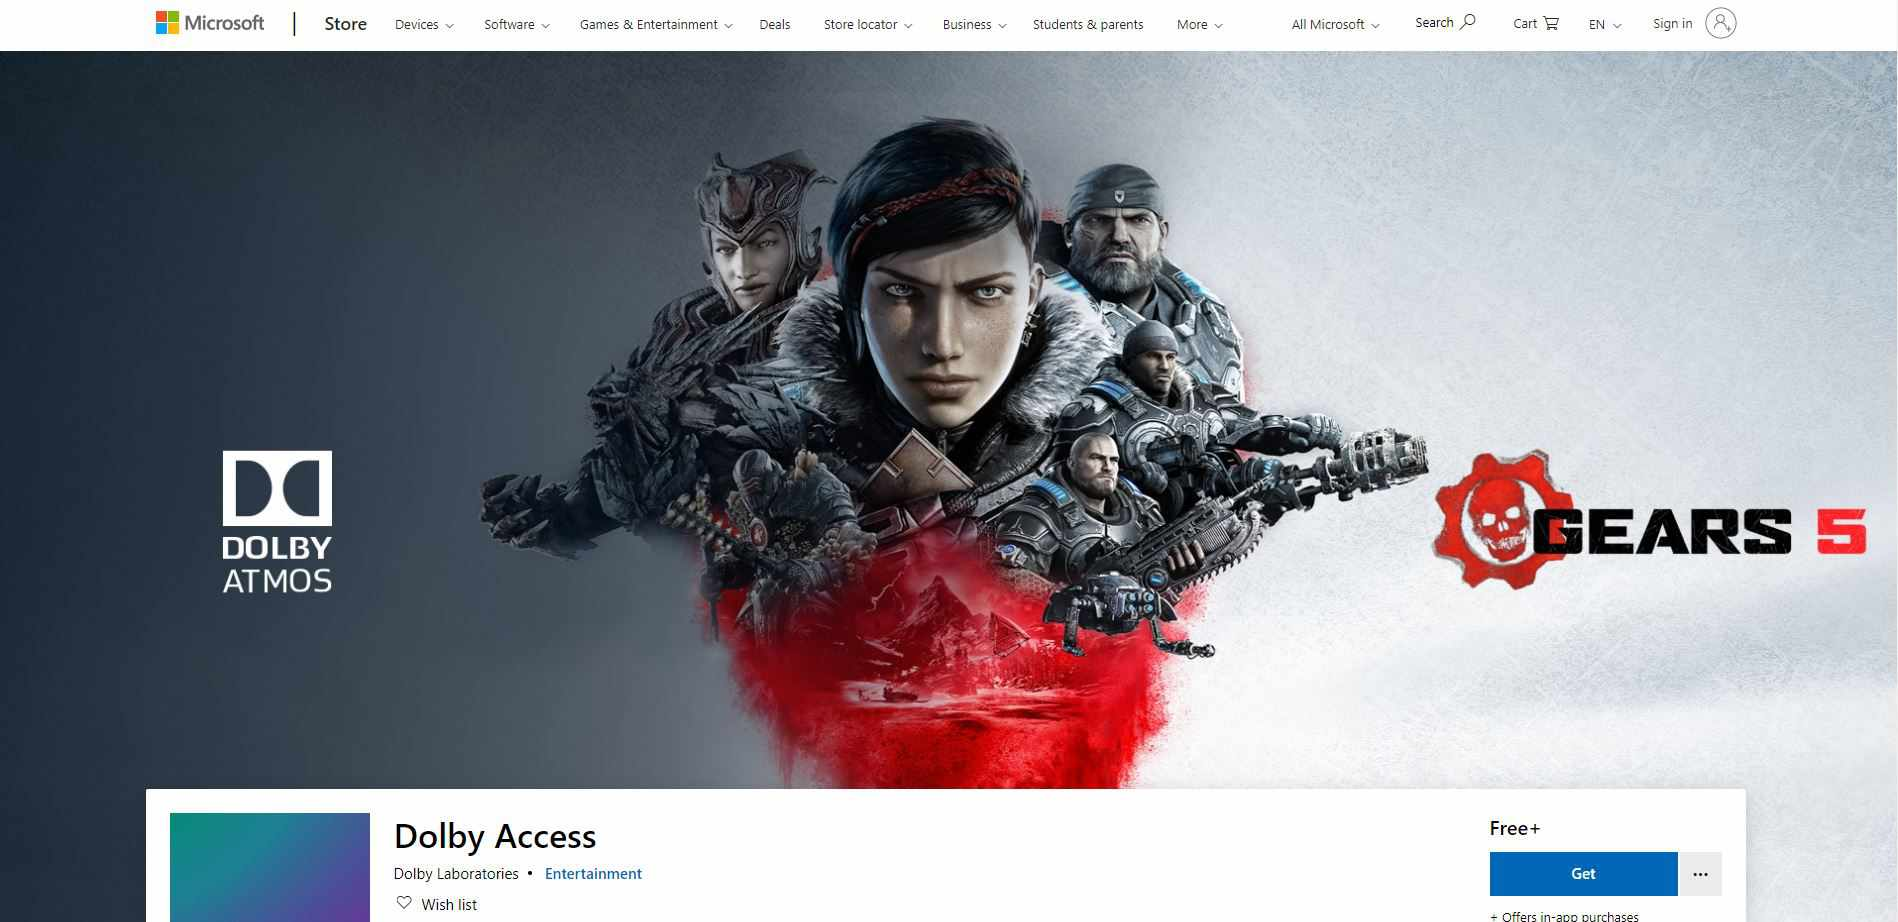 Dolby Access in the Microsoft Store